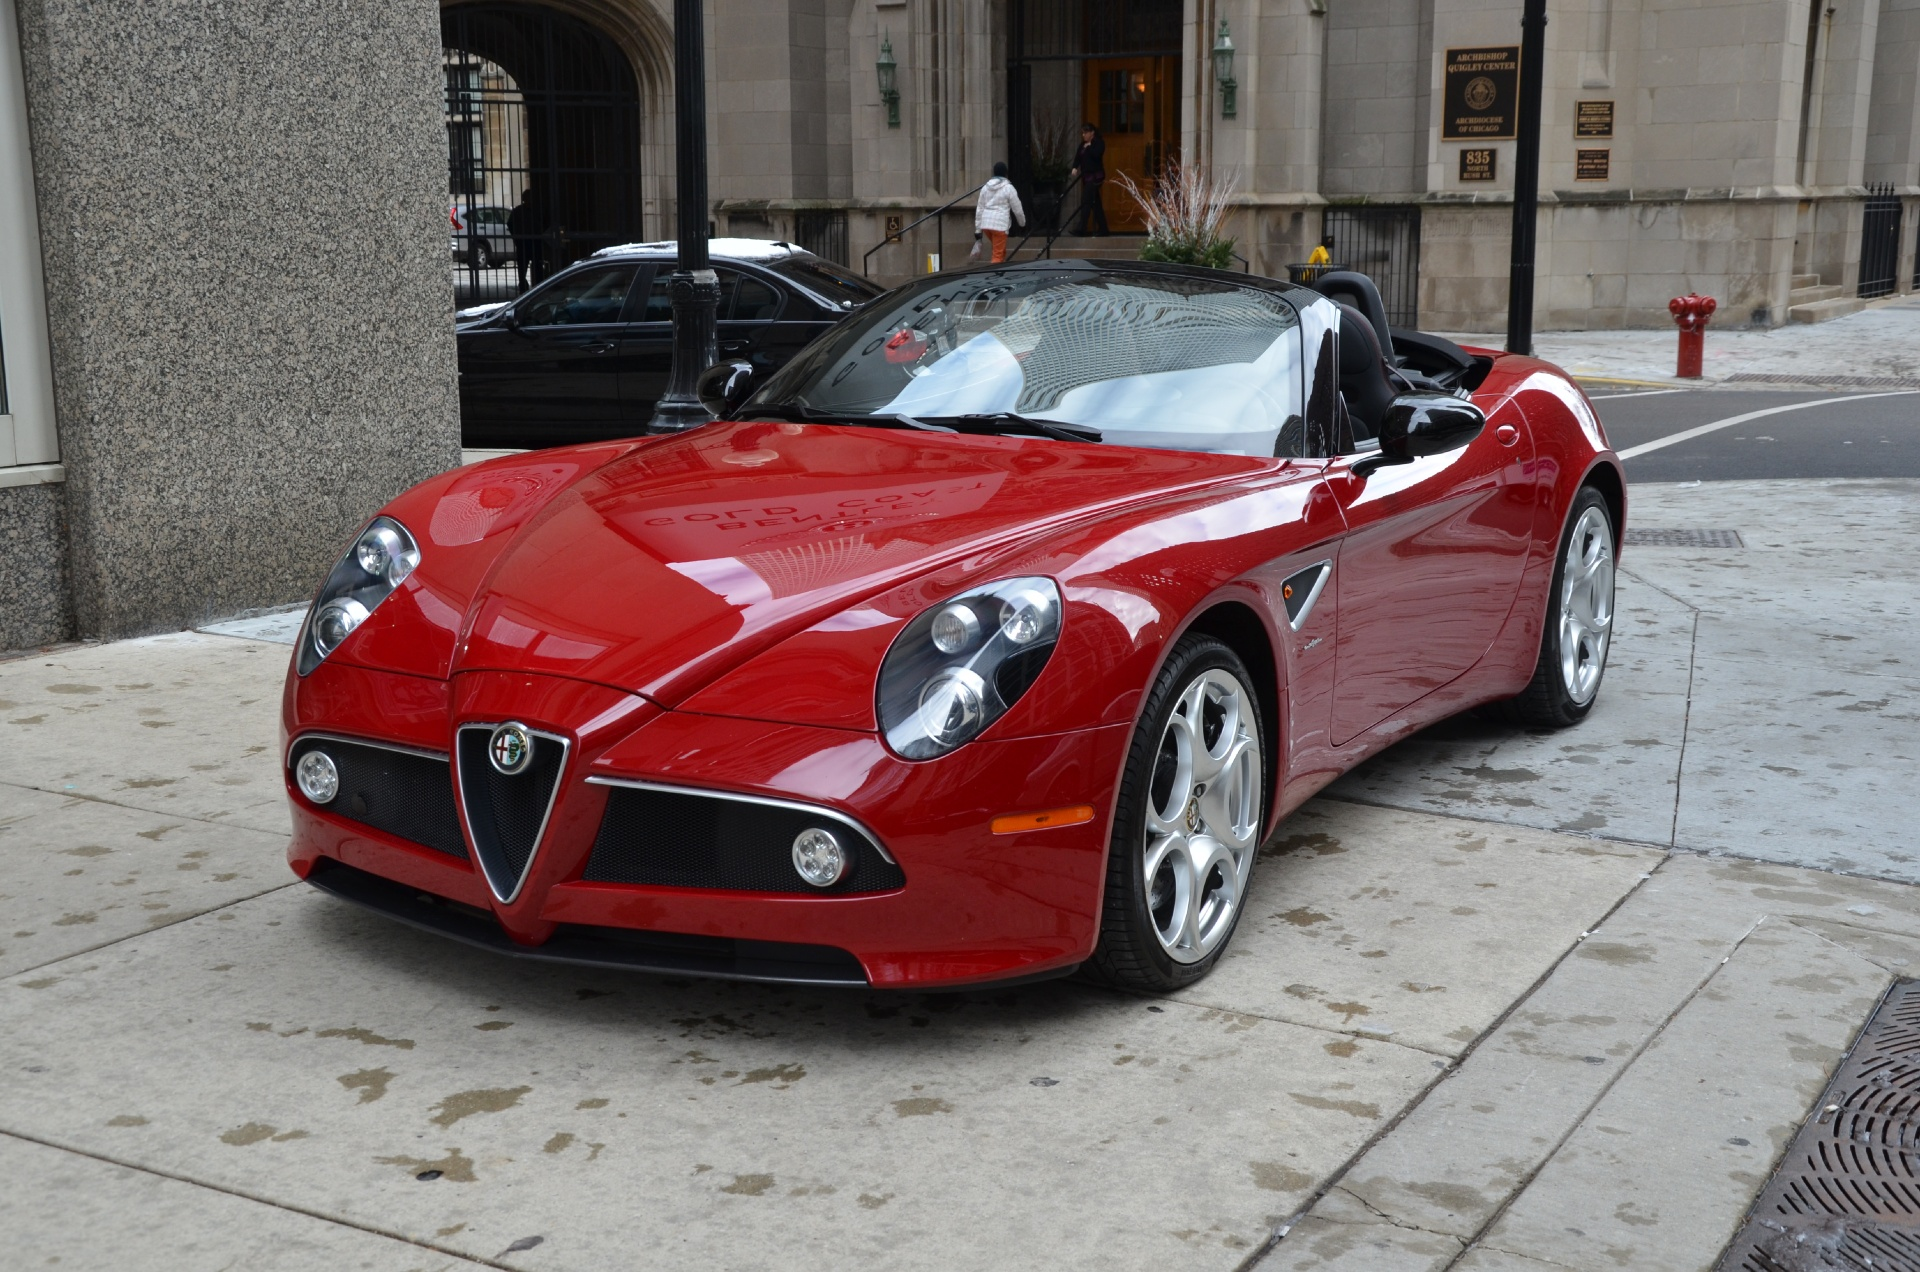 2009 Alfa Romeo 8c Stock # GC-ROLAND196 For Sale Near